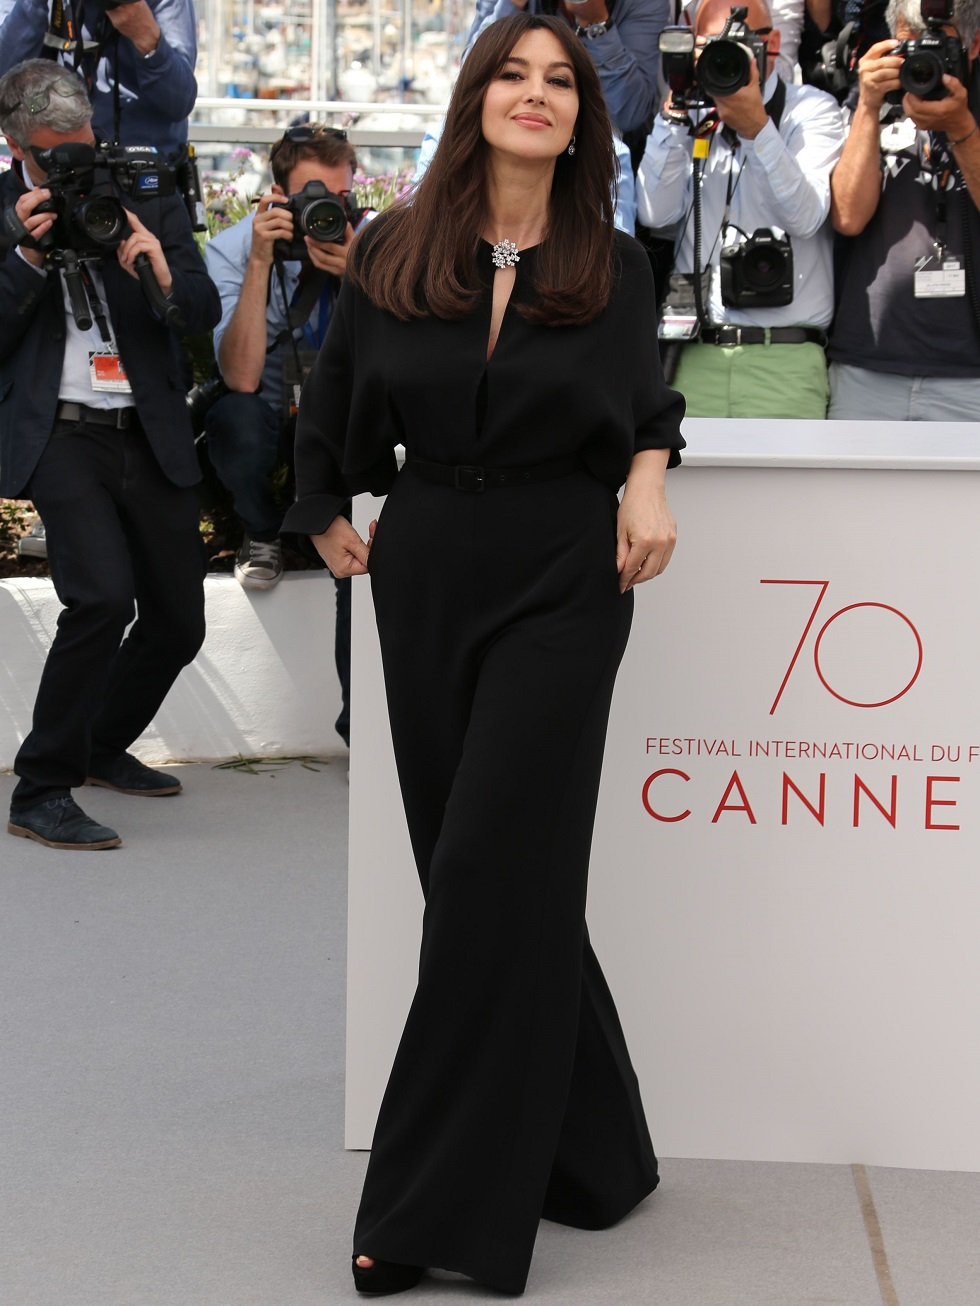 Cannes Monica Bellucci Photocall